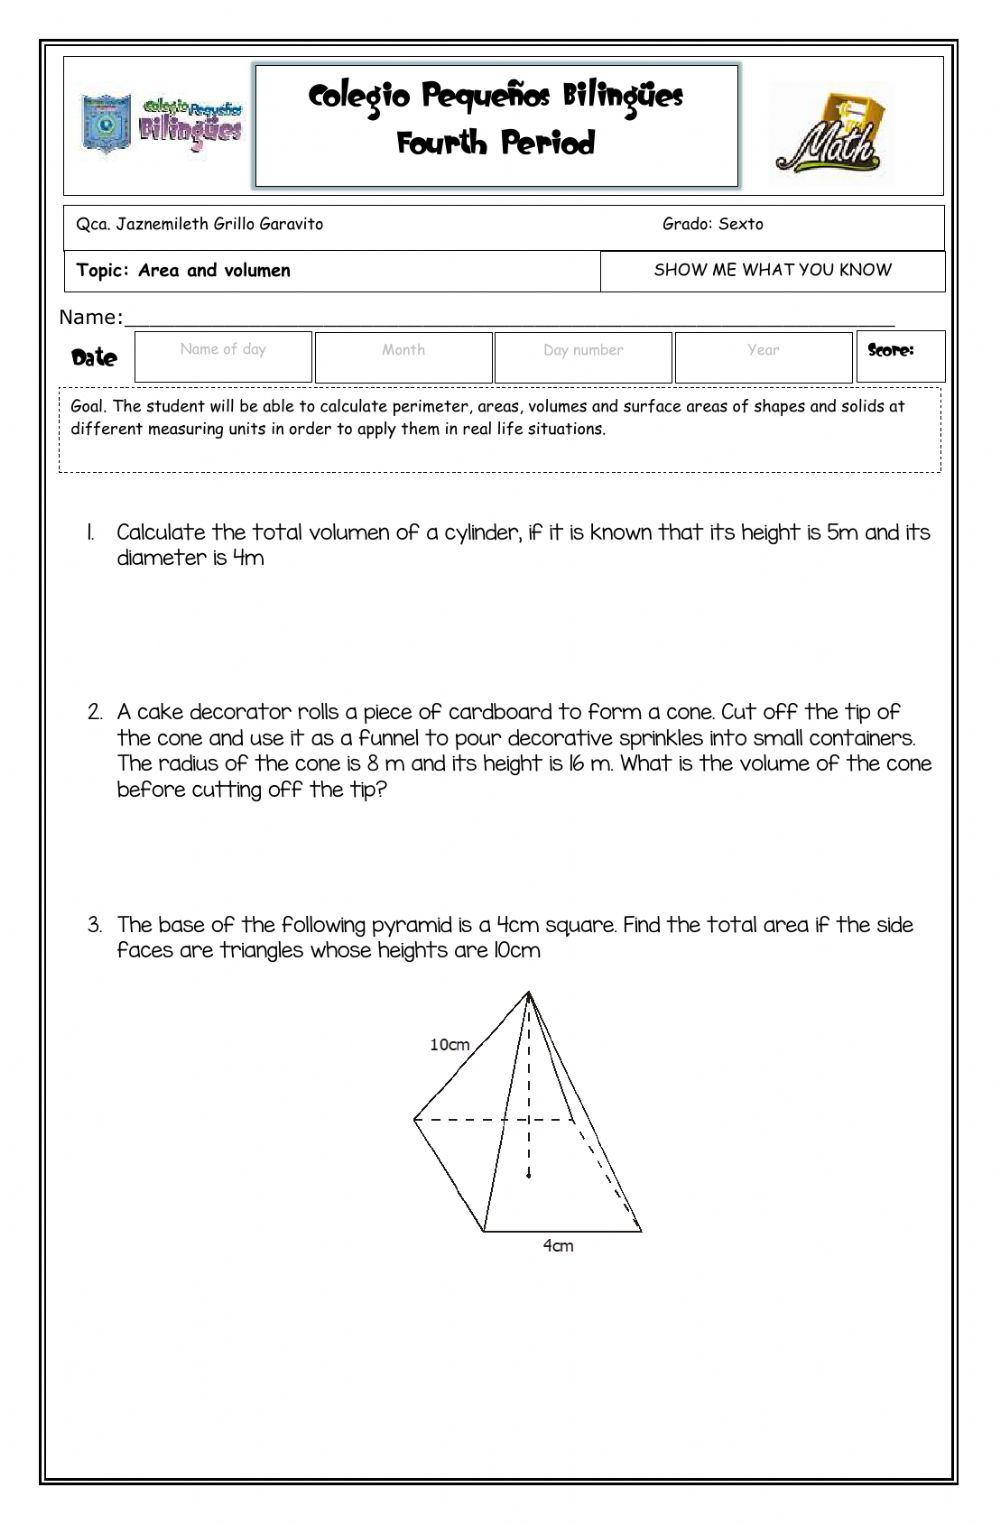 medium resolution of Show me what you know - Volumen -sixth grade- fourth term -2020 worksheet